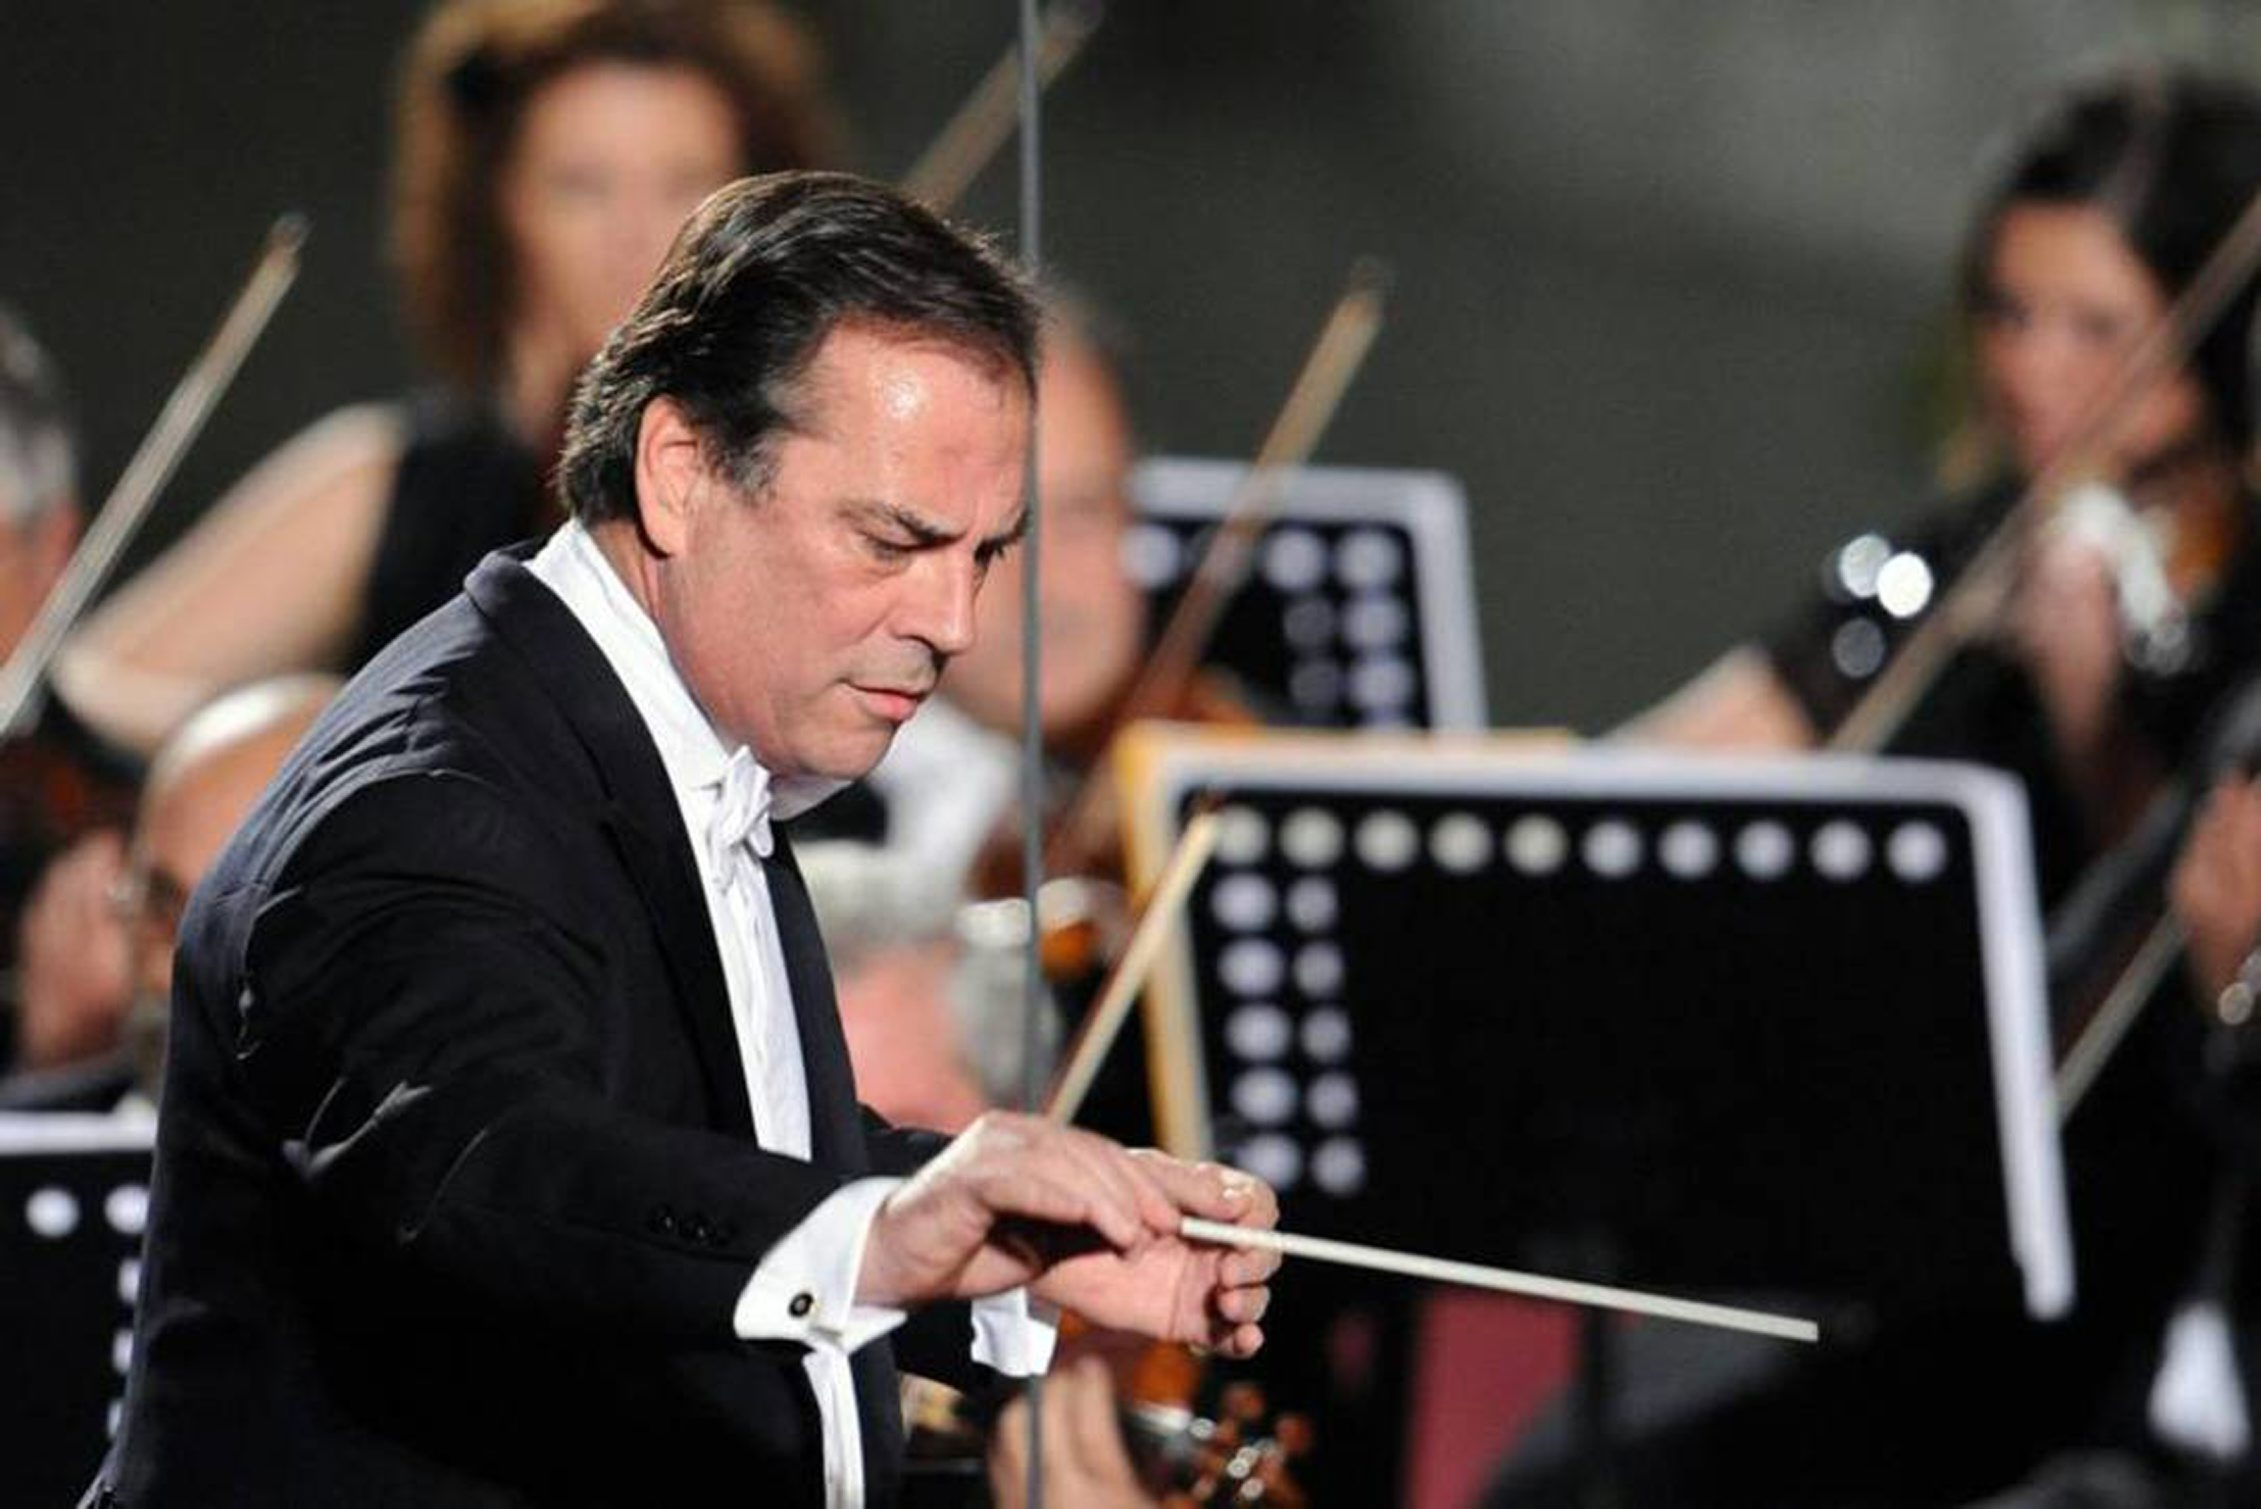 Former BPO music director Maximiano Valdes is being considered for the same position with the Chautauqua symphony.